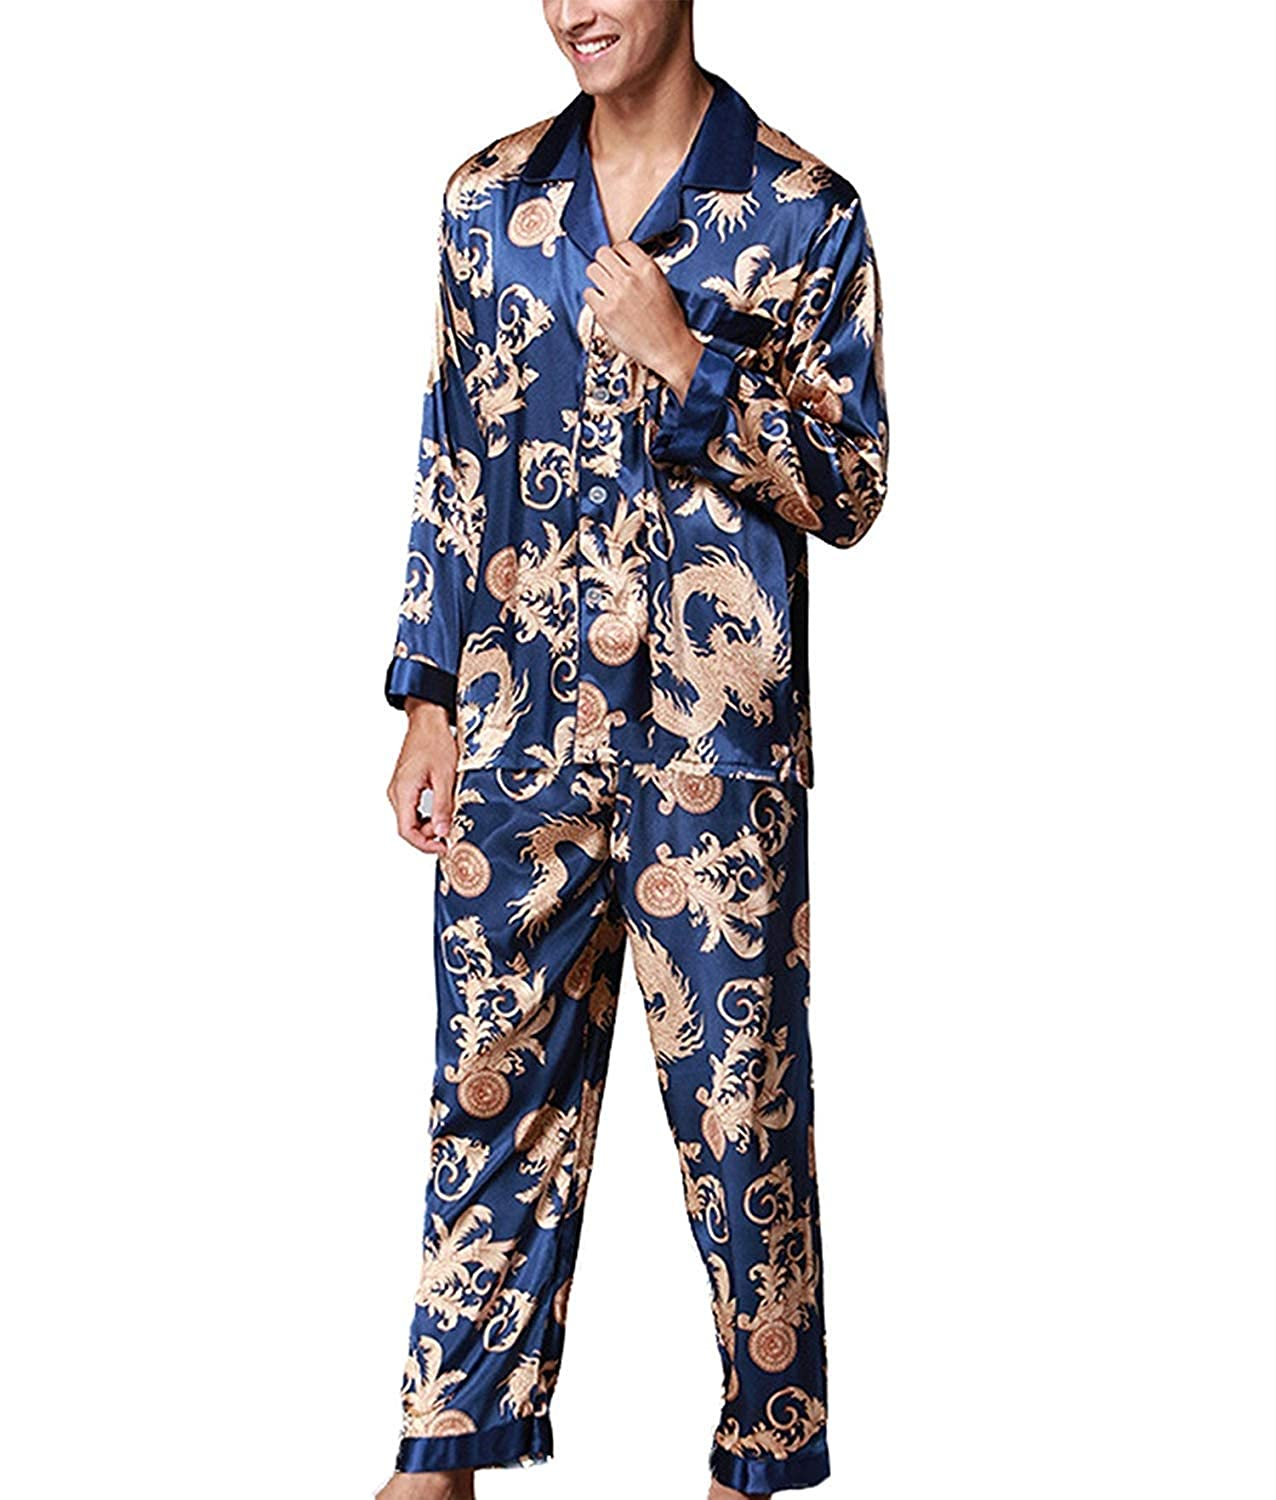 11f5a61692 Pajamas Men Men Pajamas Tops Sets Pants and Silky Comfortable Homewear  Sleep Fashion Brands Negligee Shirts Two Piece Set  Amazon.co.uk  Clothing